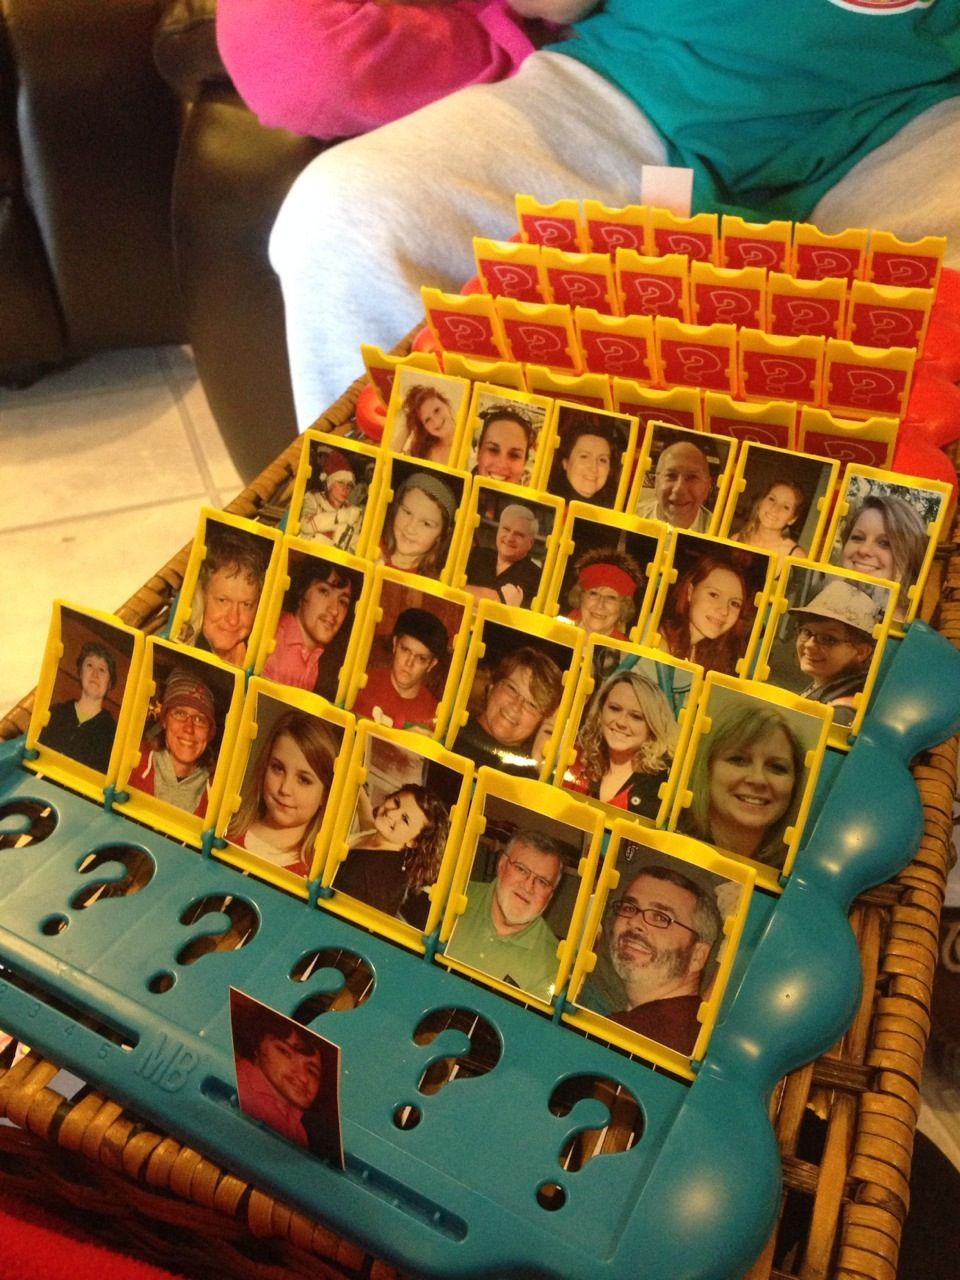 Guess Who friends edition ! Hilarious for a game night